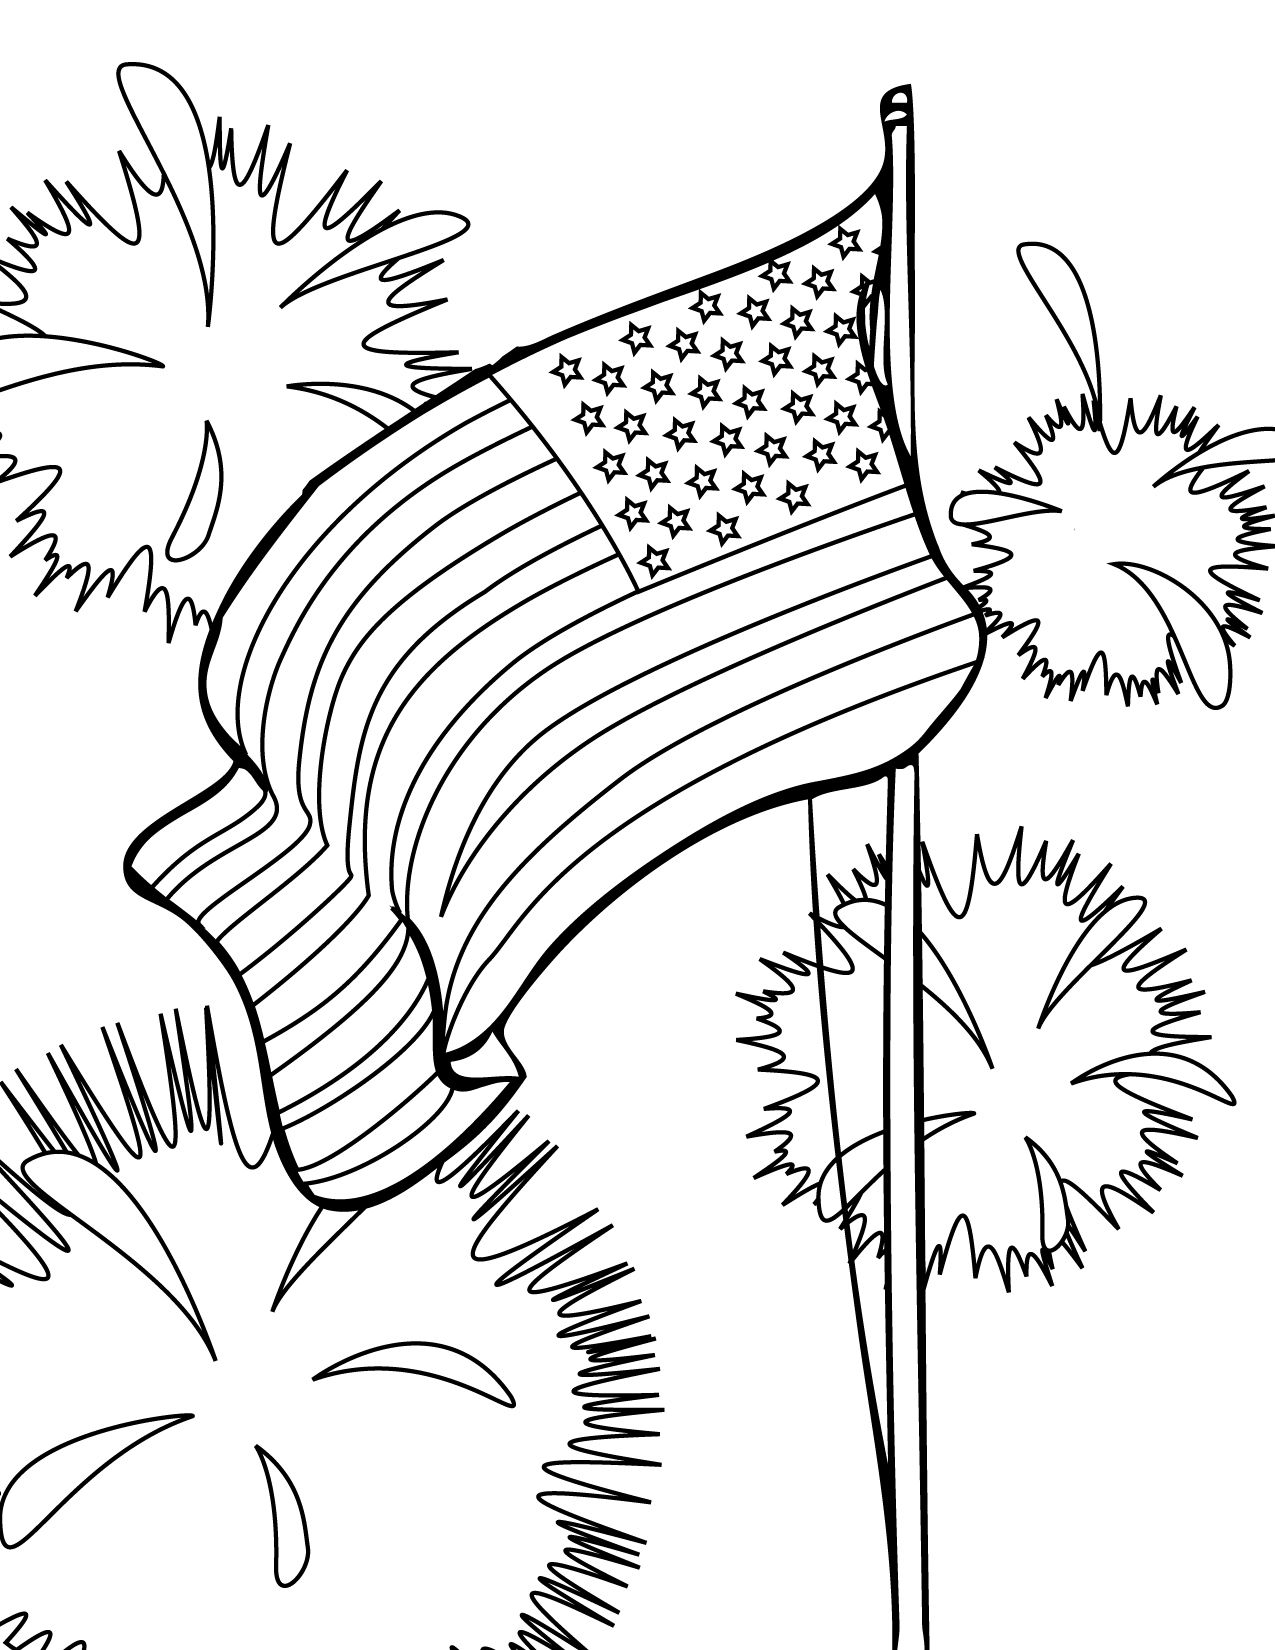 Fourth of july (usa) coloring pages for preschool